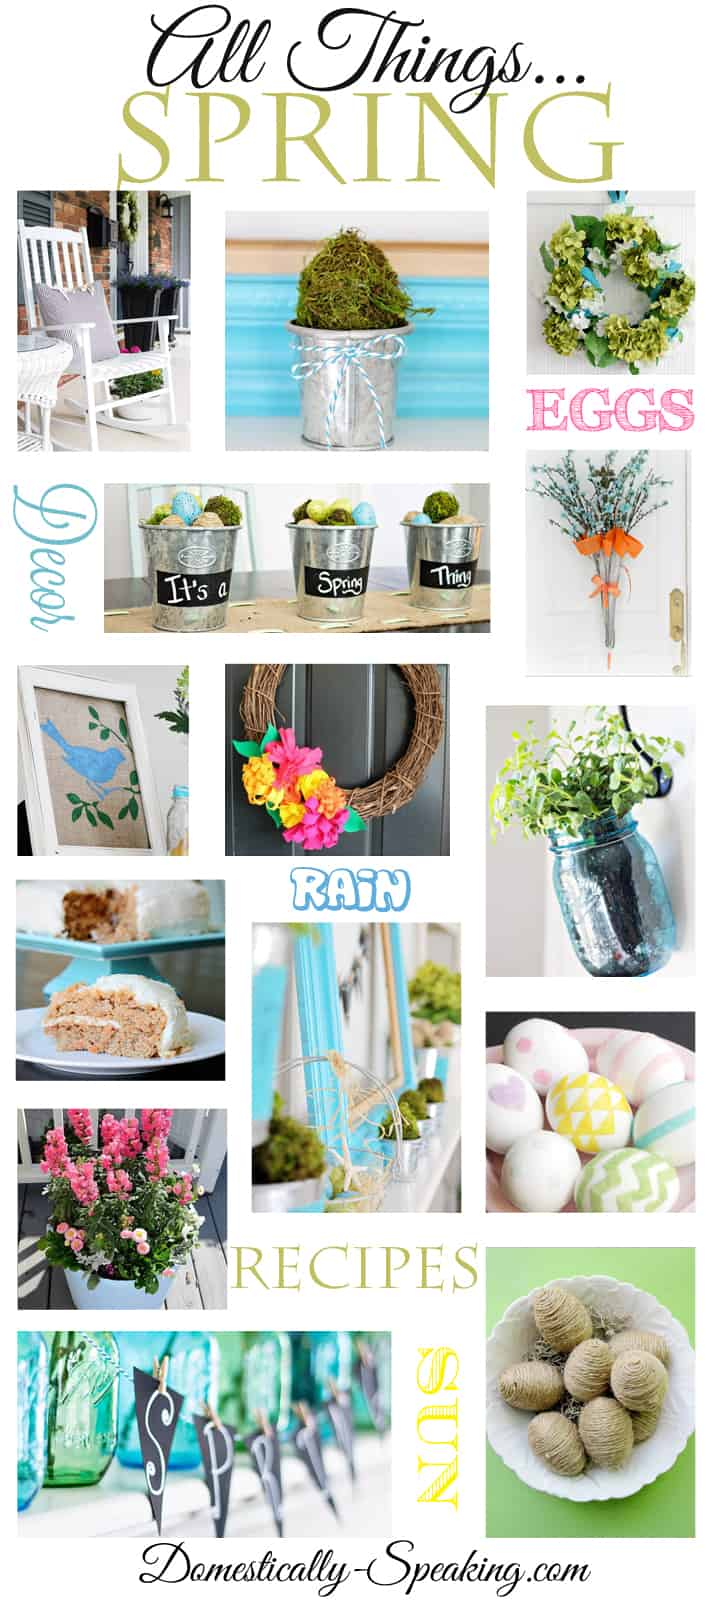 All Things Spring Over 100 Spring Crafts Recipes Decor